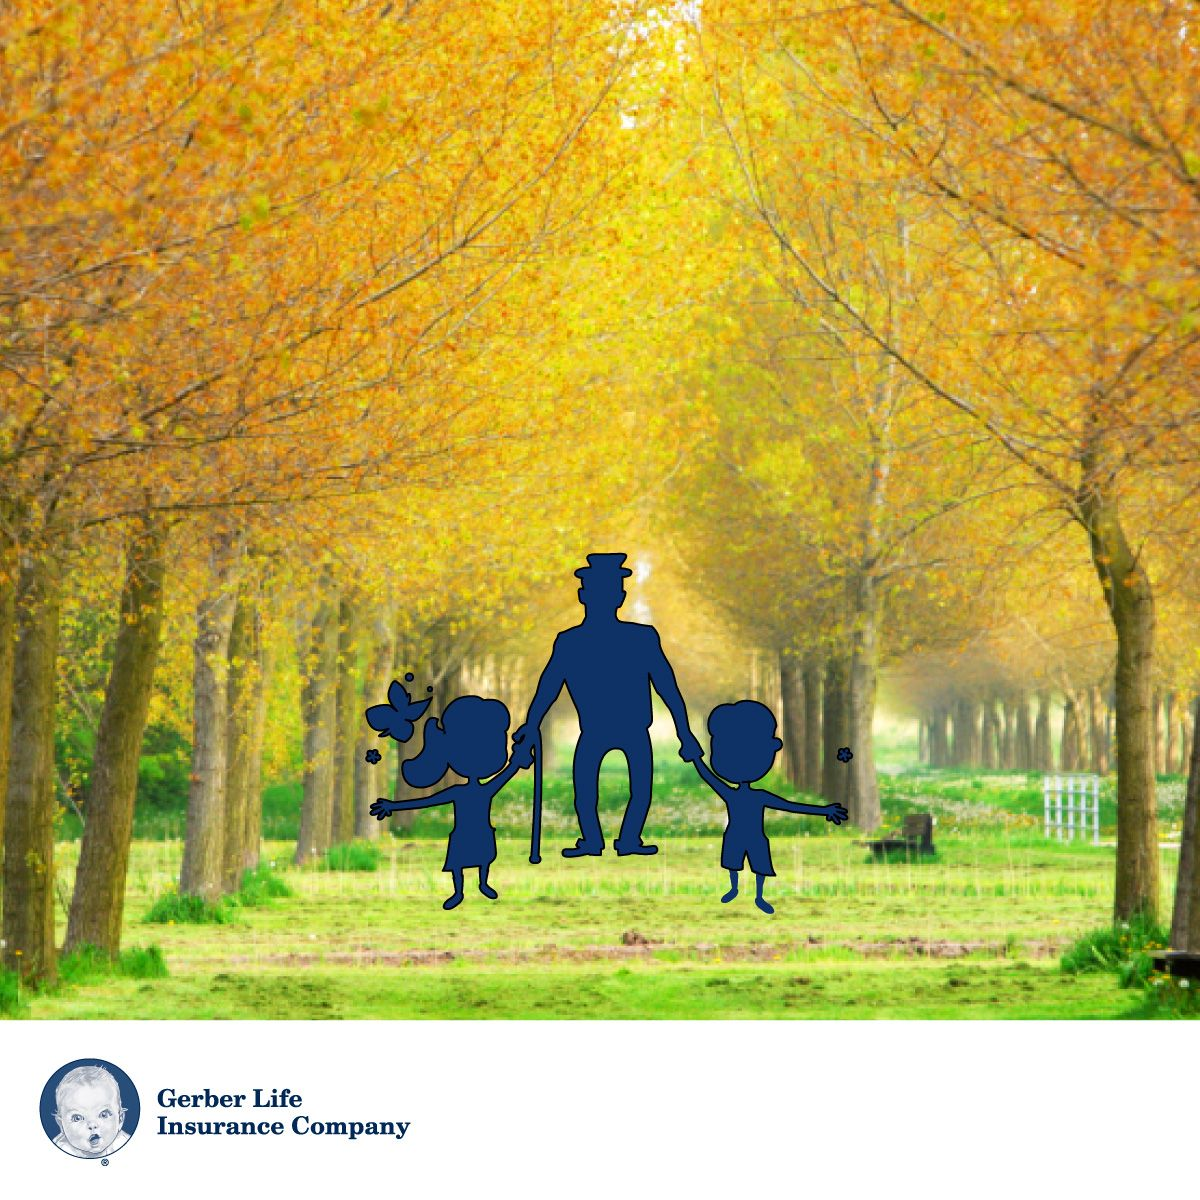 Find out how guaranteed life insurance can help your